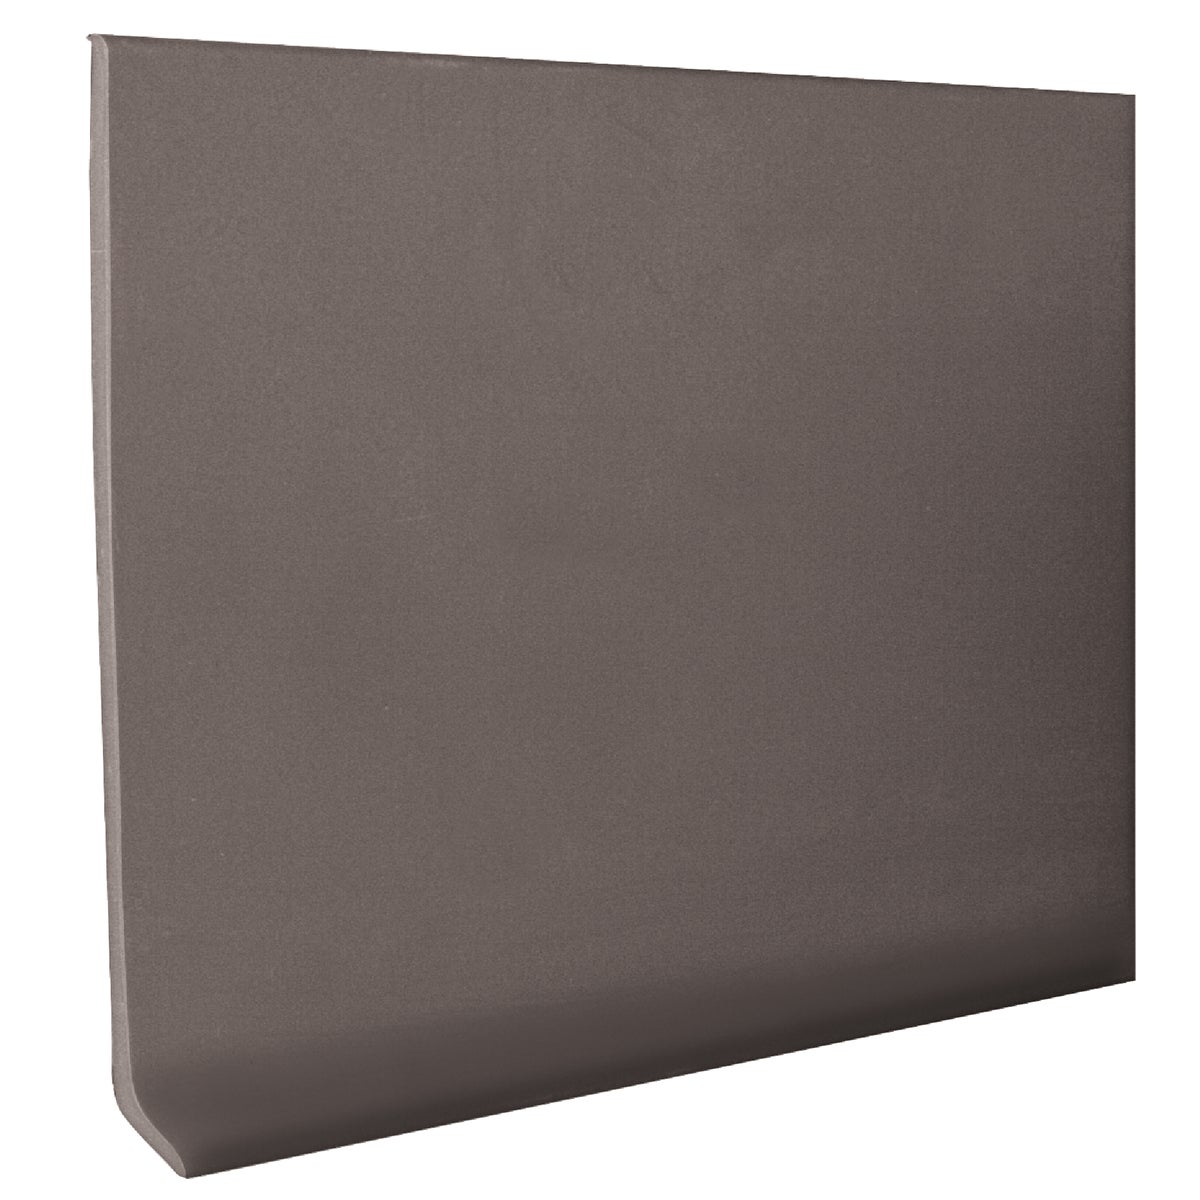 "2-1/2""X4'GRAY WALL BASE - H1625C53P150 by Roppe Corporation"